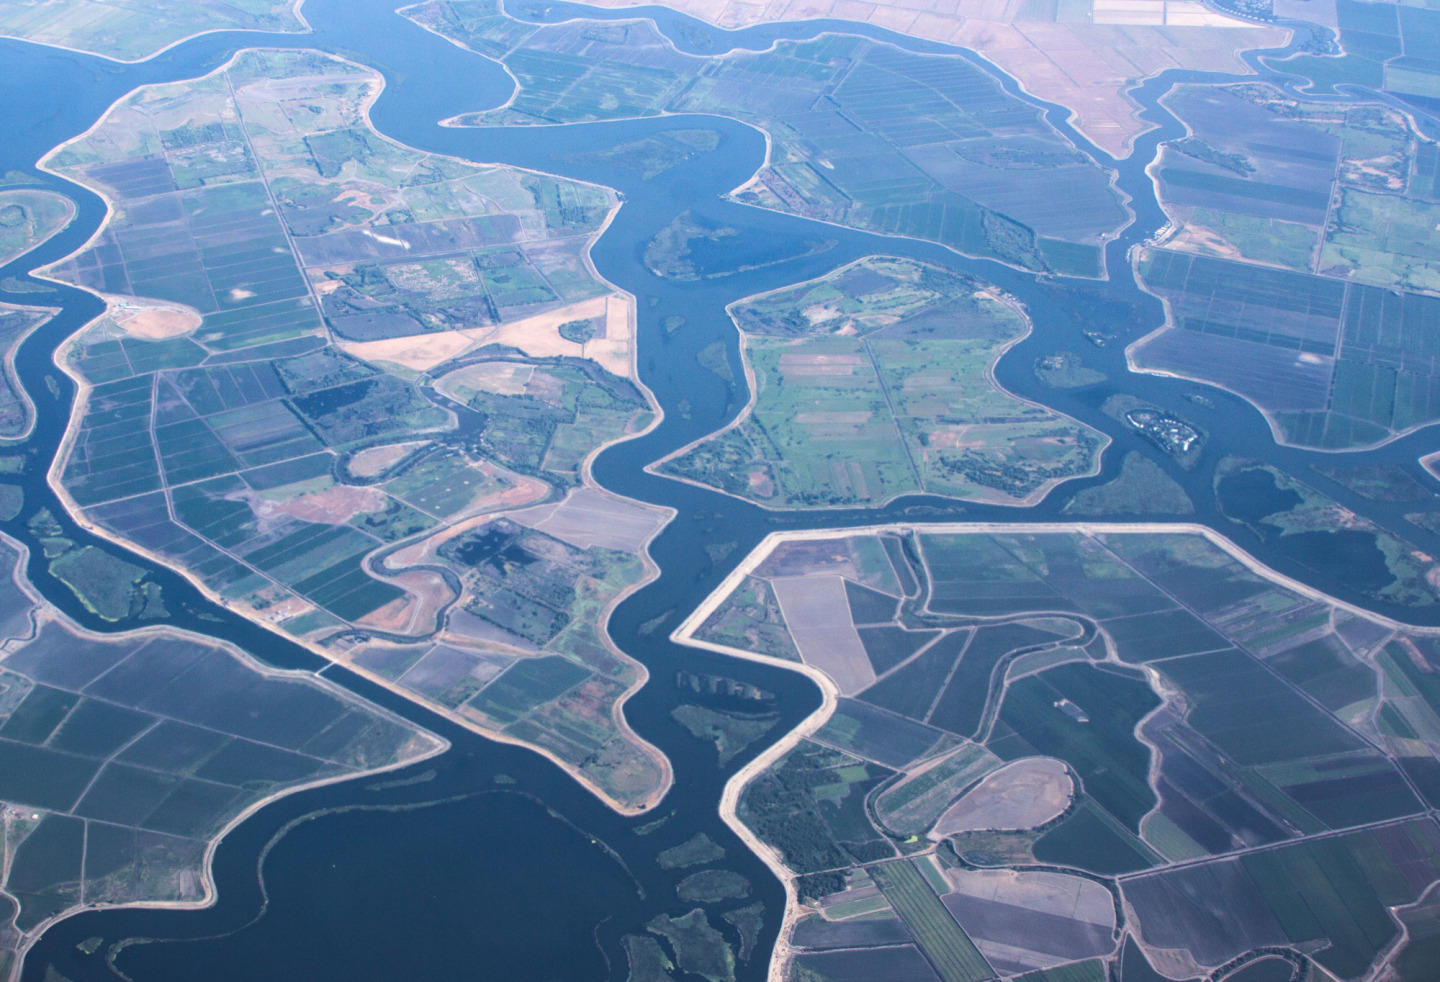 The Sacramento-San Joaquin Delta has been almost completely transformed over the past 150 years. (Dan Brekke/KQED)